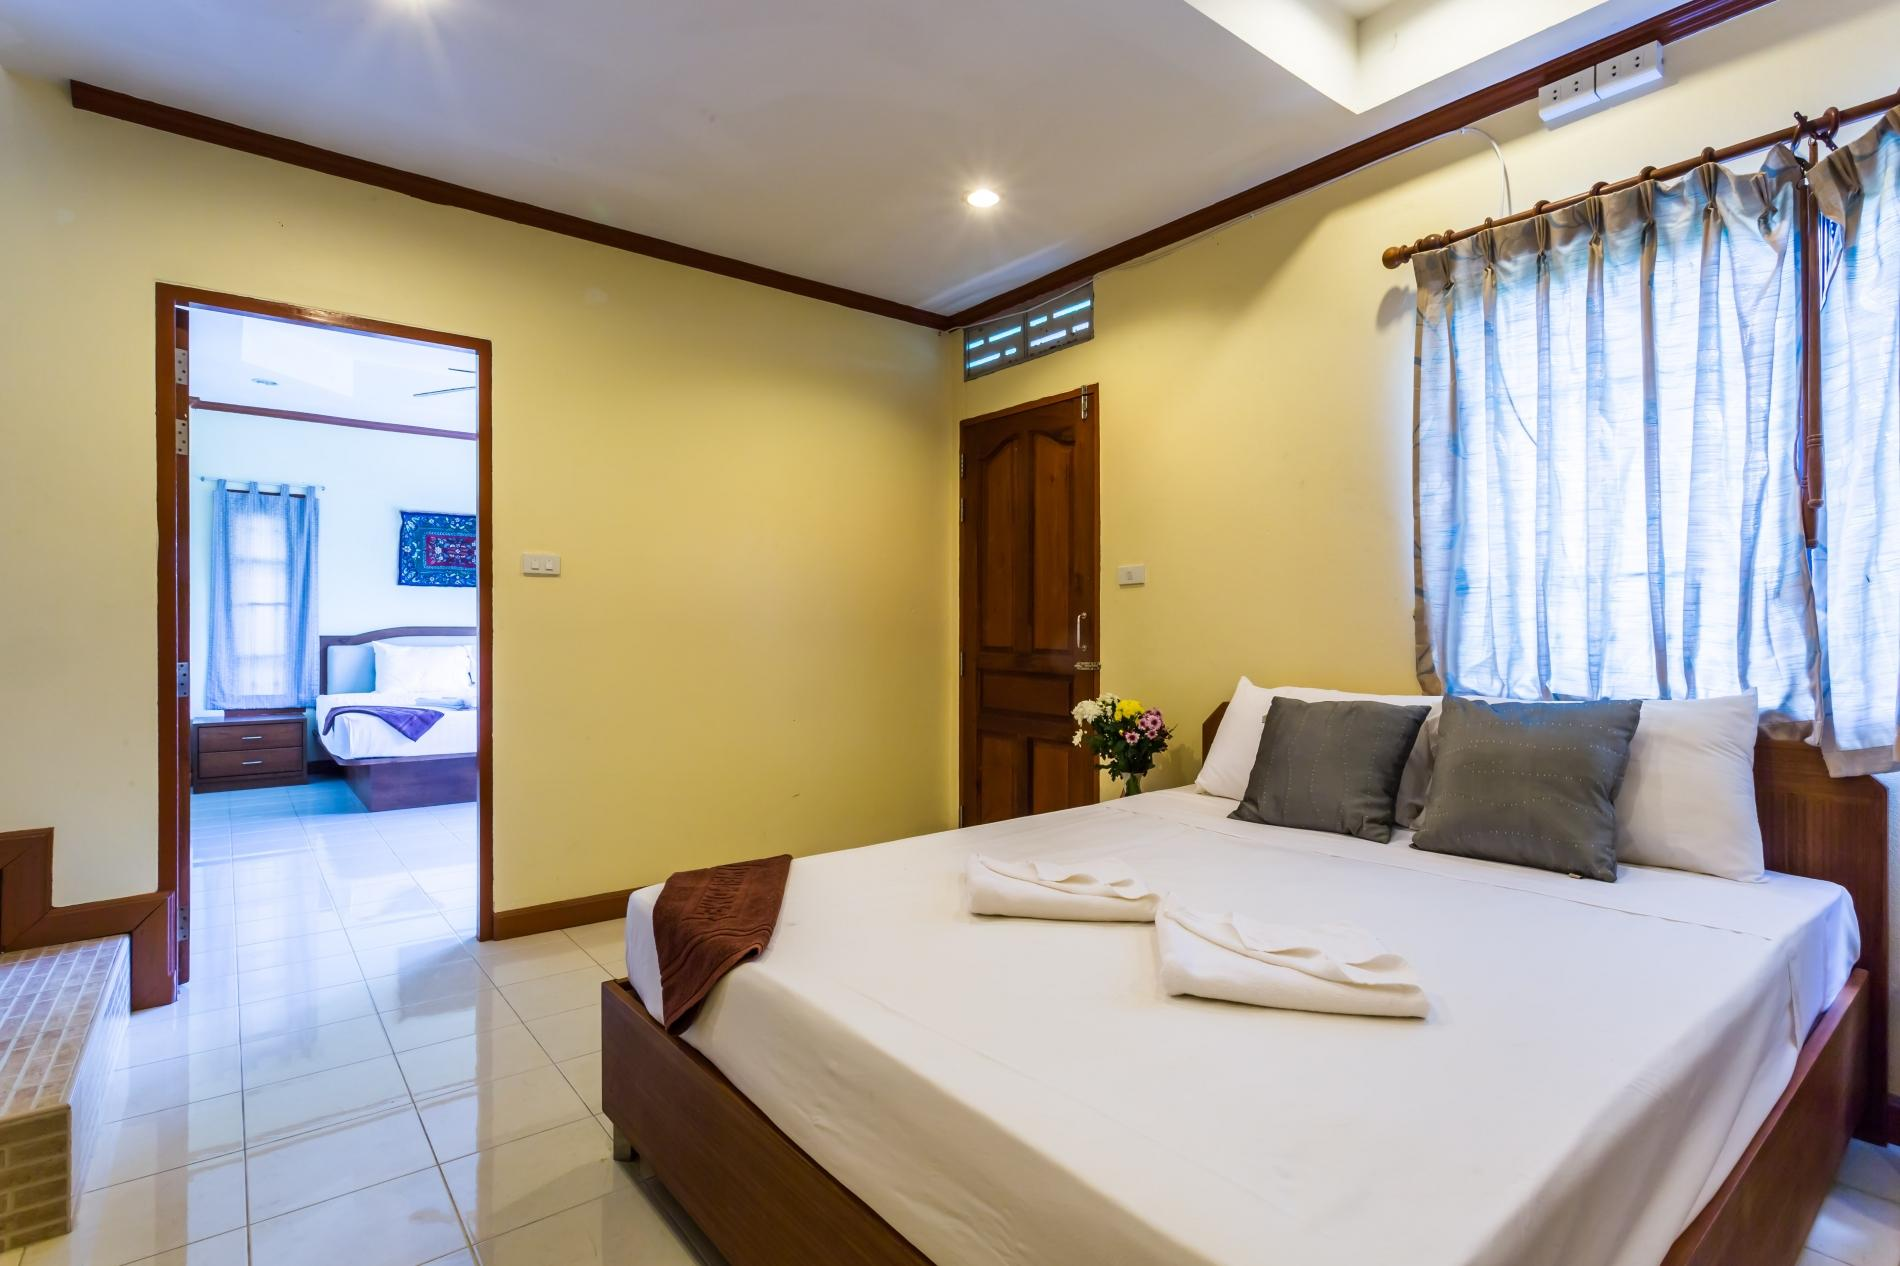 Apartment Vista Villa 1 - Seaview private pool villa in Patong for 9 people  photo 18444426